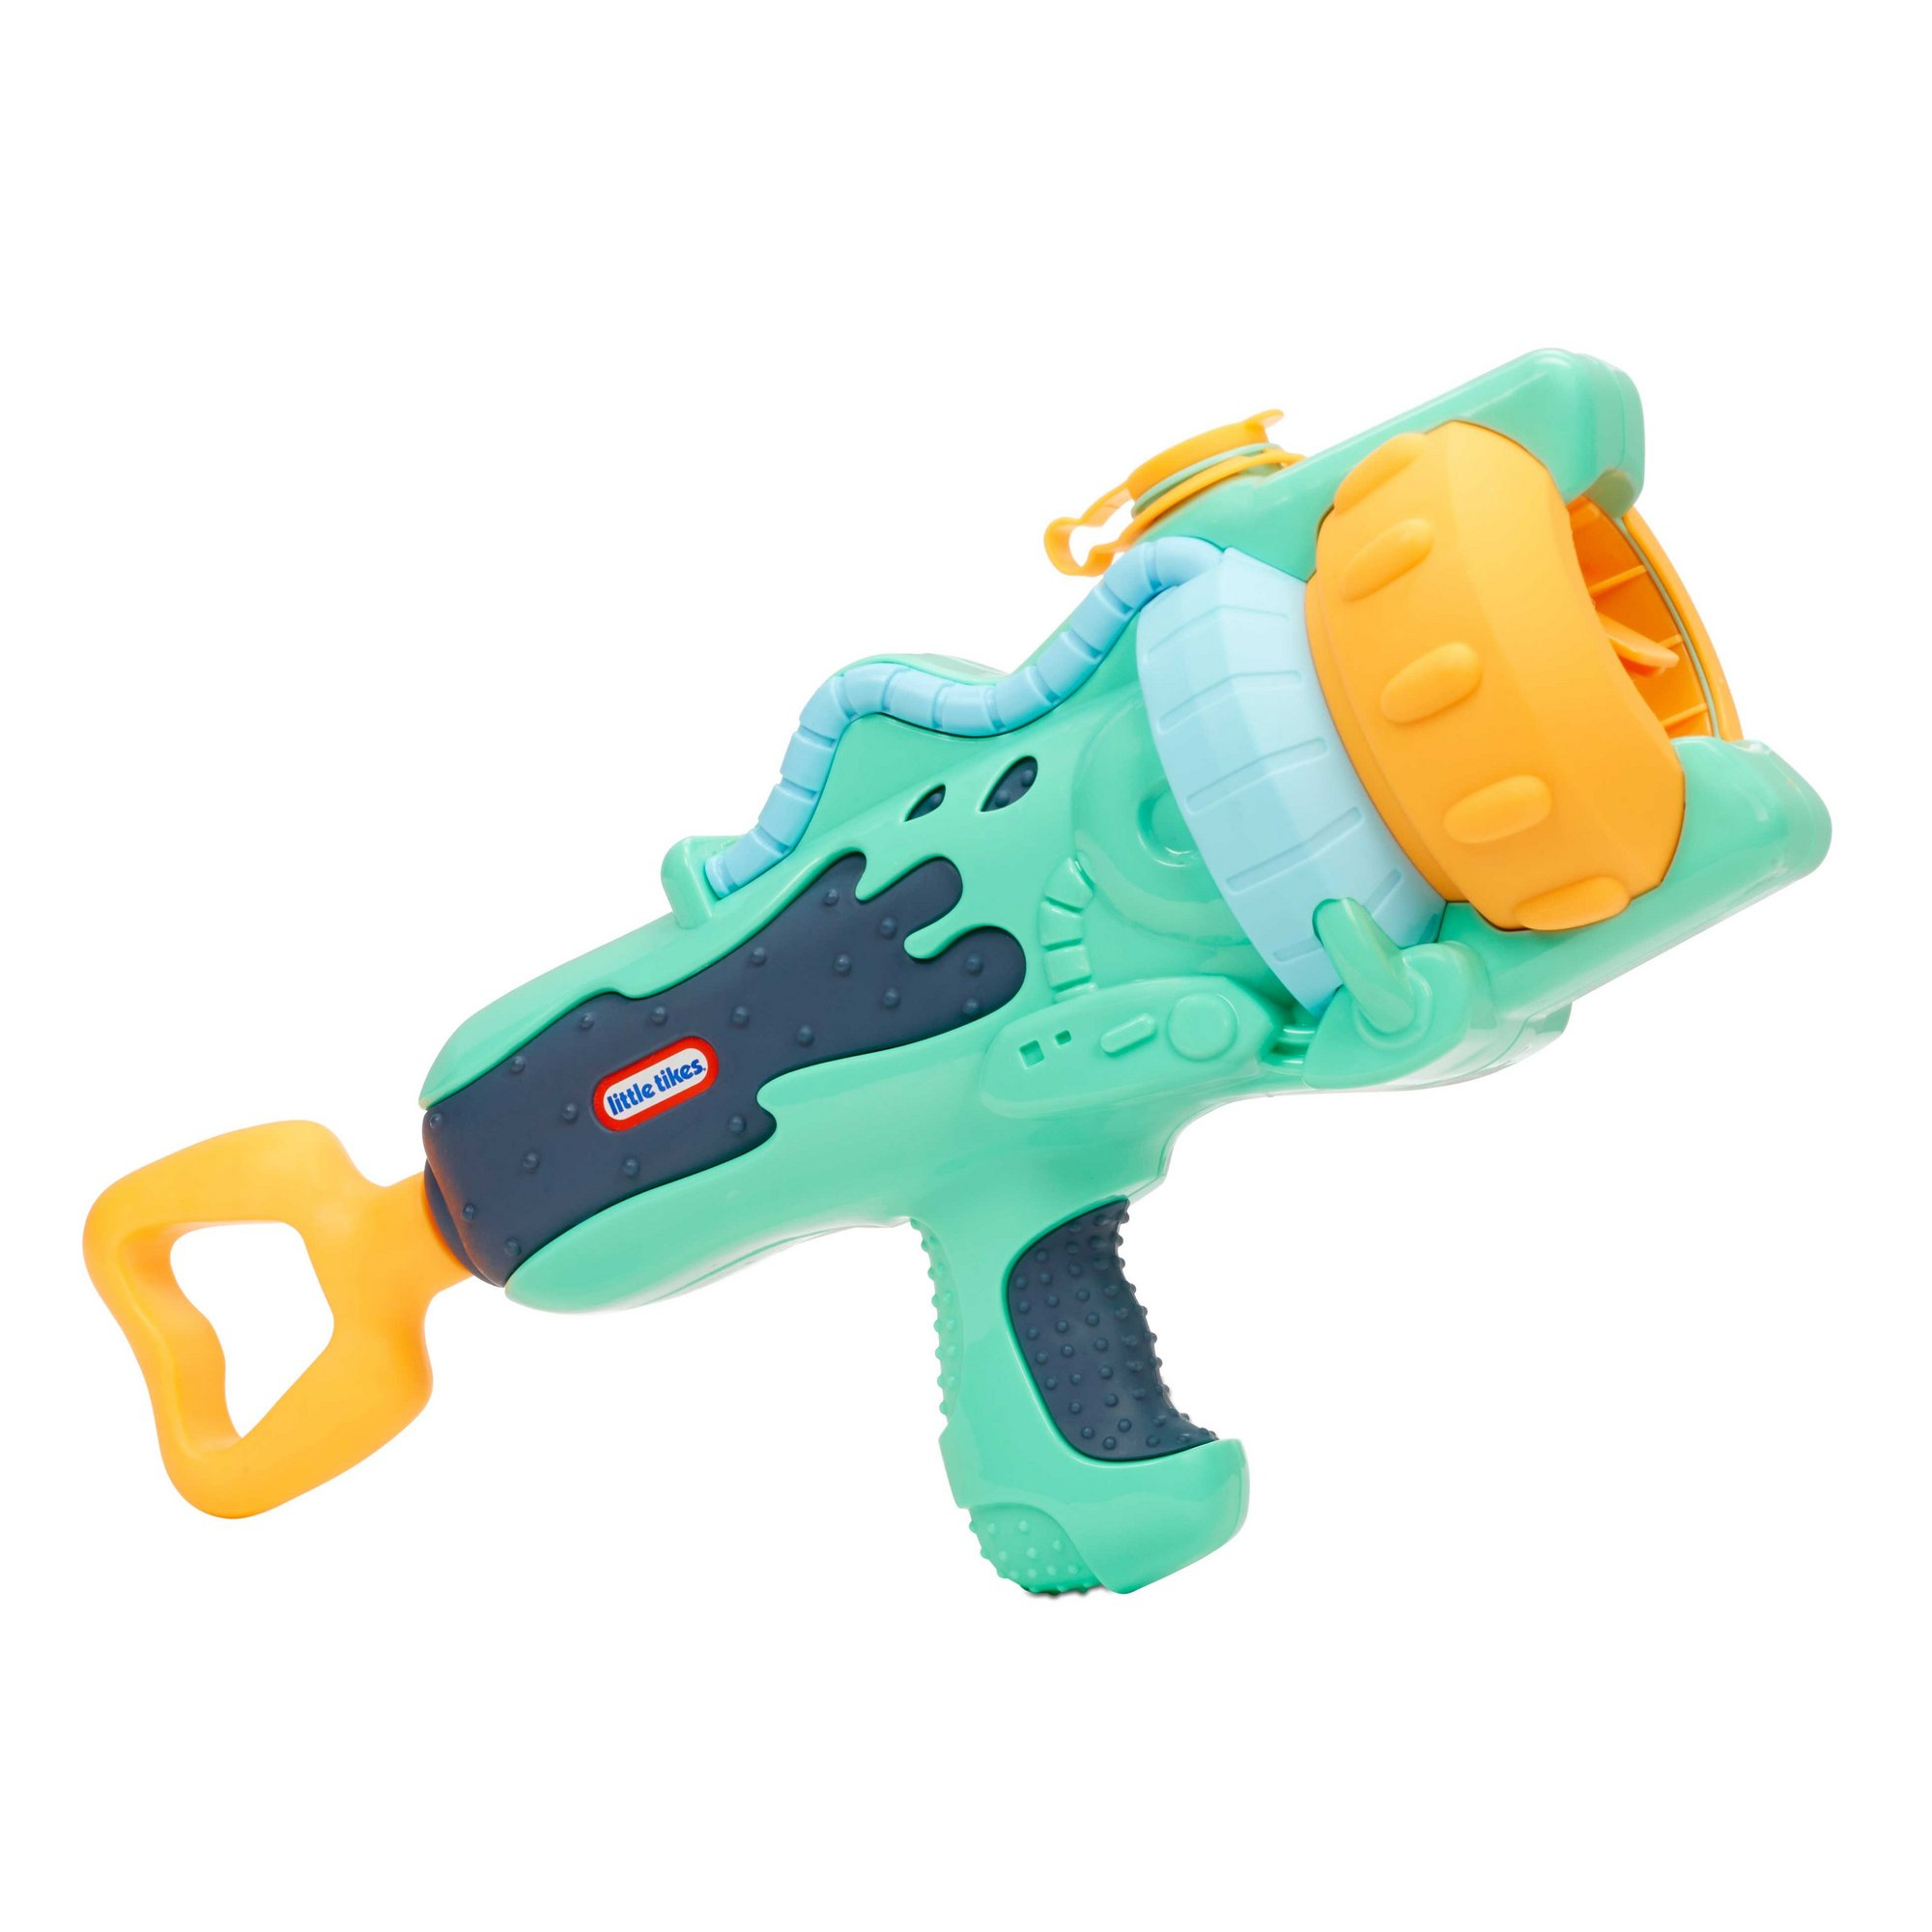 Image of Little Tikes My First Mighty Blasters Spray Blaster